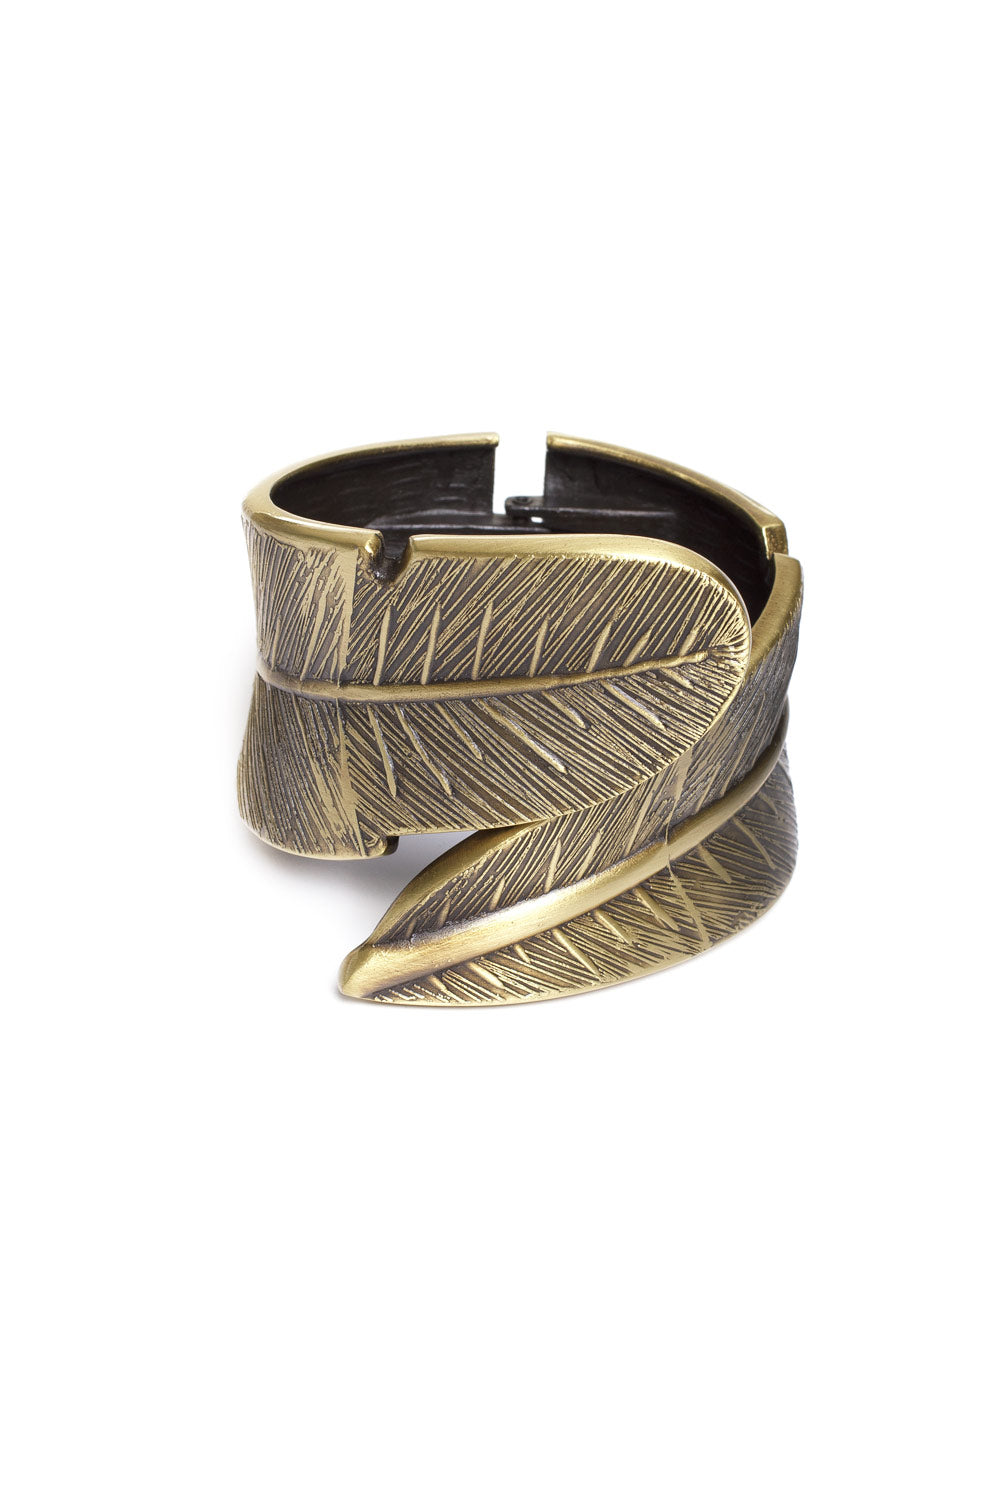 Type 3 Eagle Feather Bracelet